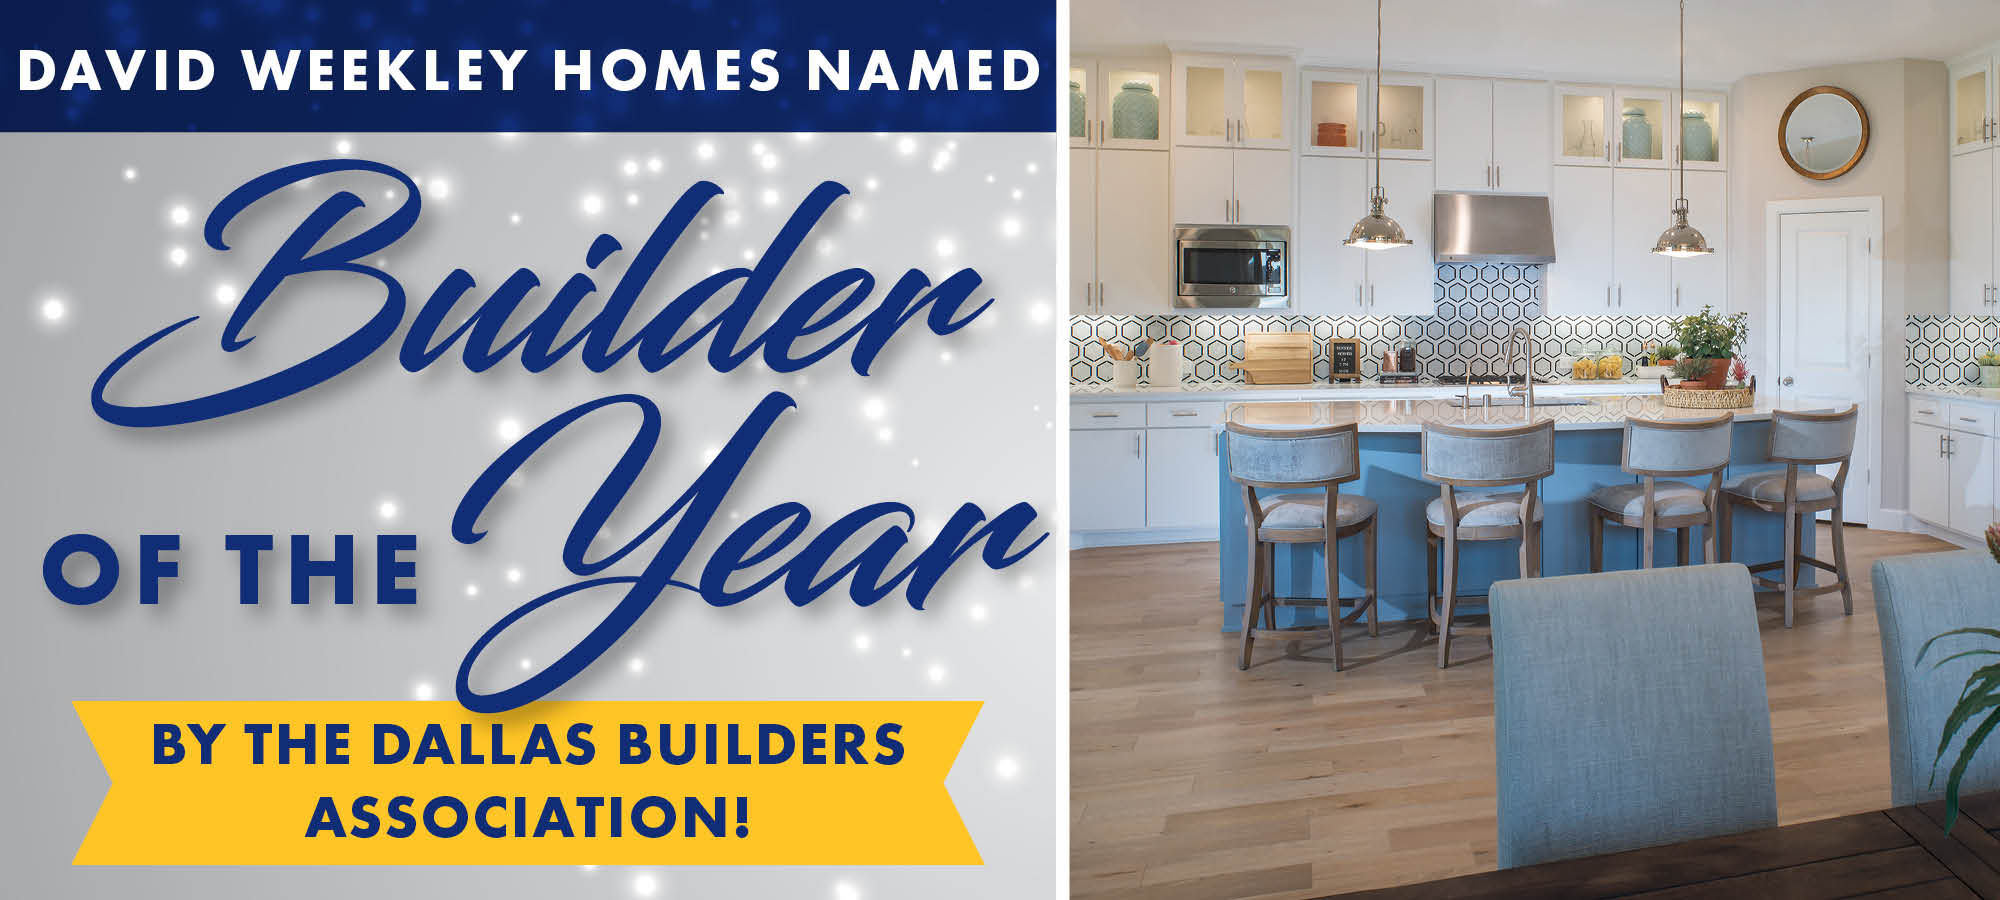 David Weekley Homes Wins Builder of the Year in Dallas!